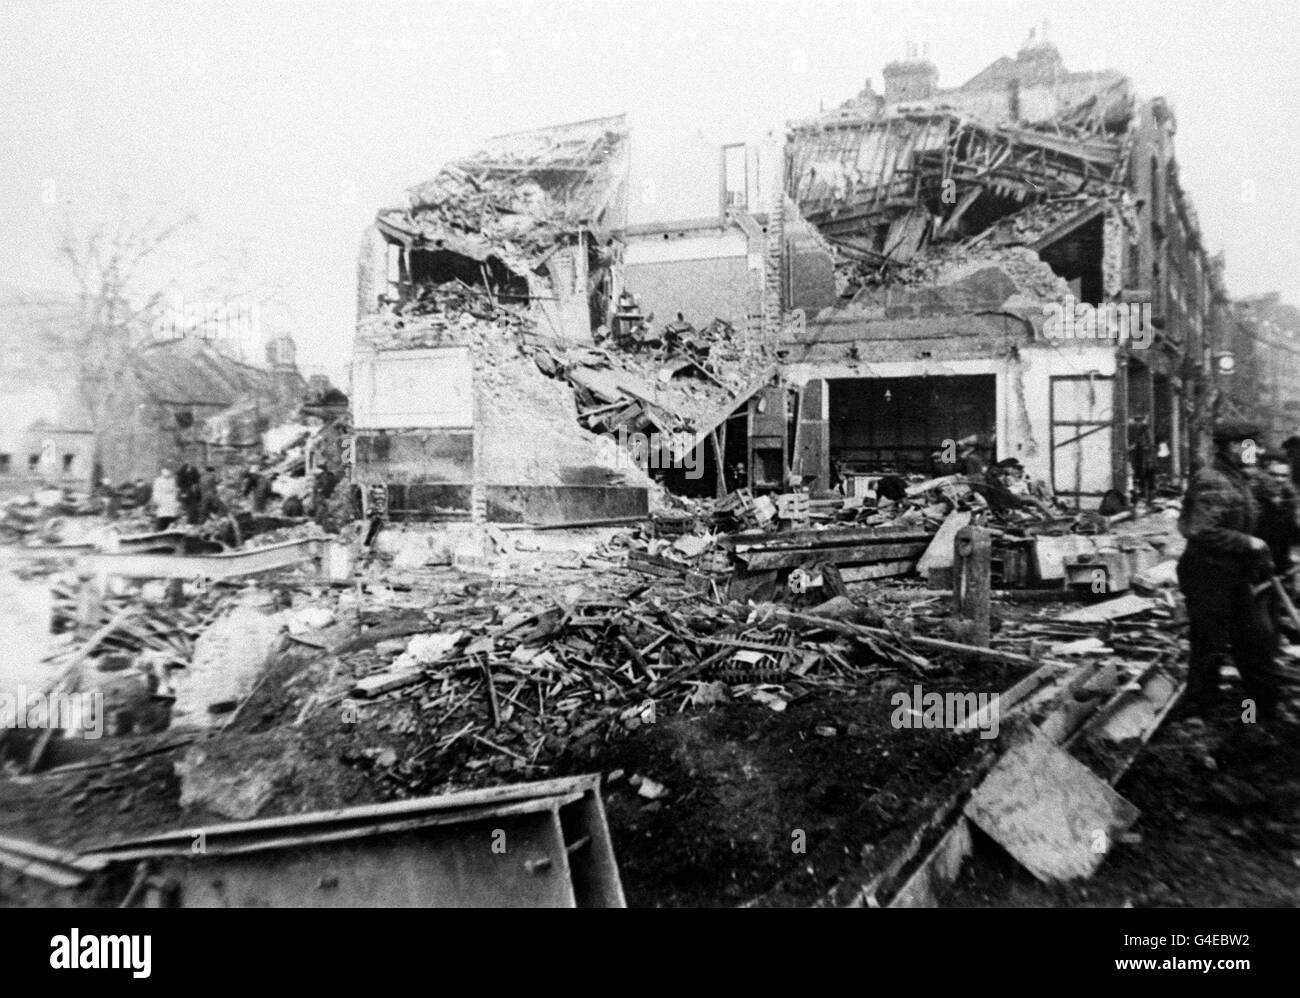 PA NEWS PHOTO NOVEMBER 1944 SCENE OF DEVASTATION AFTER A GERMAN V2 ROCKET FELL ON WOOLWORTHS AND OTHER STORES IN Stock Photo